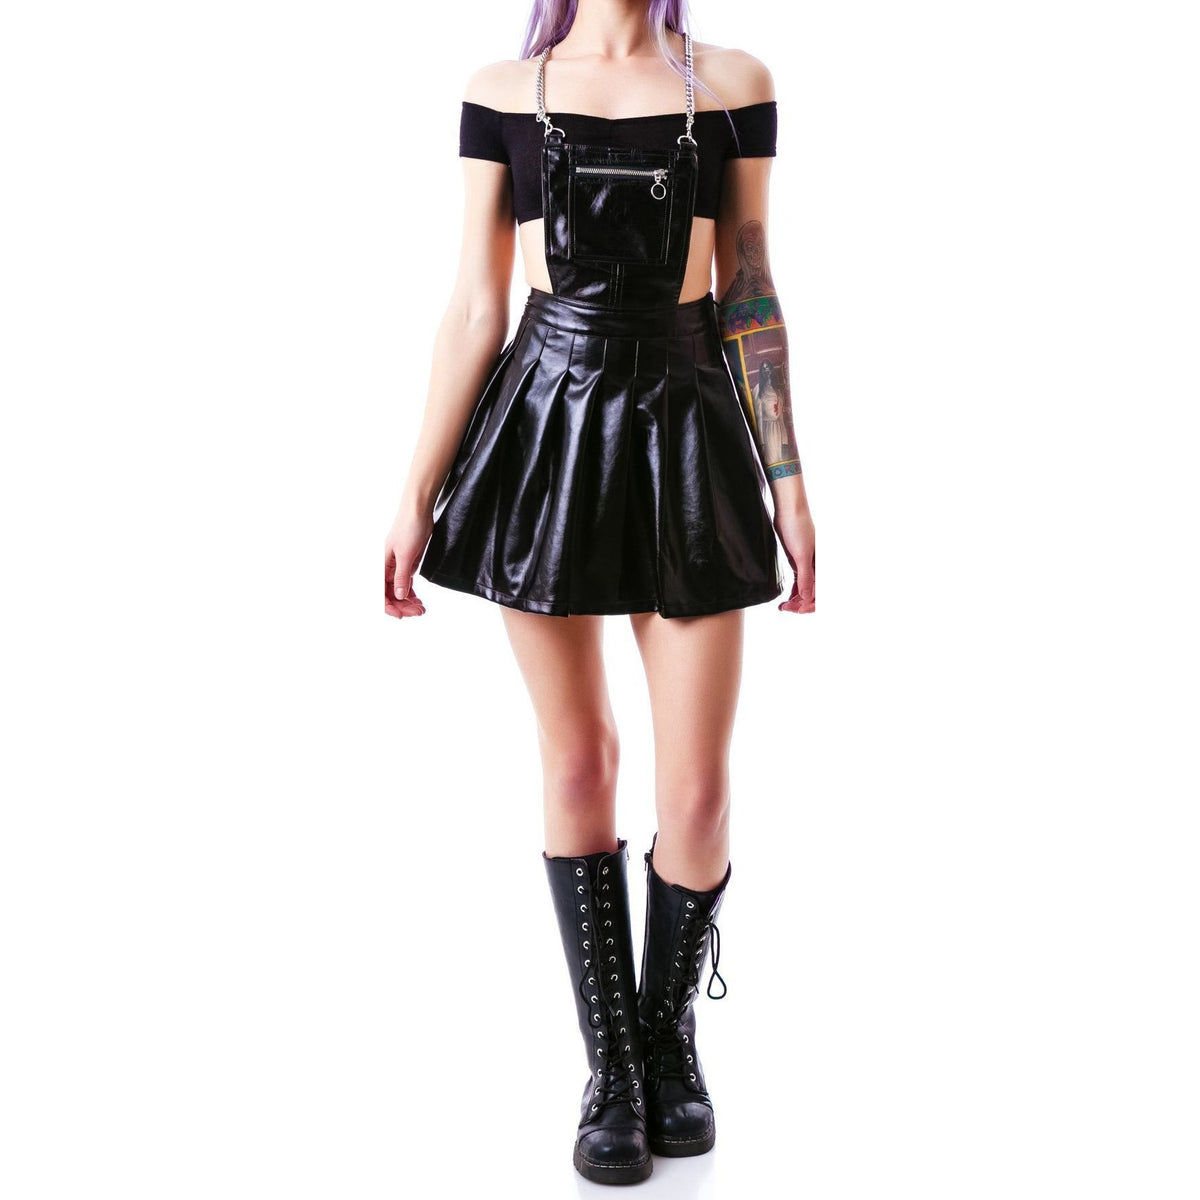 24HRS Life On Mars Space Cadet Apron Dress - Black